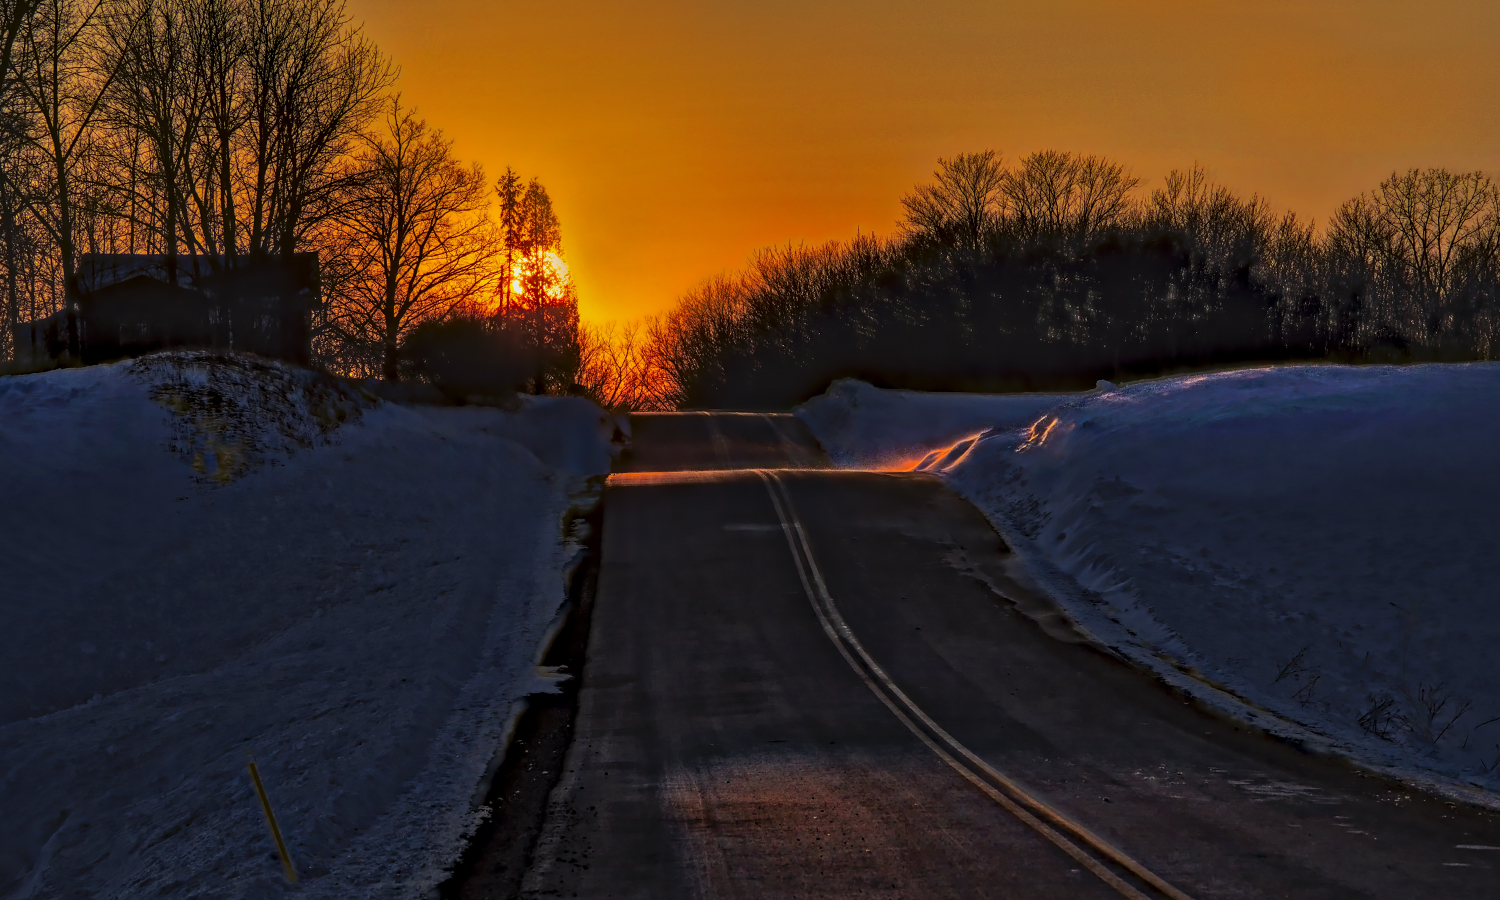 The sun creates a golden glow across a wintry country road in Tyre, N.Y.